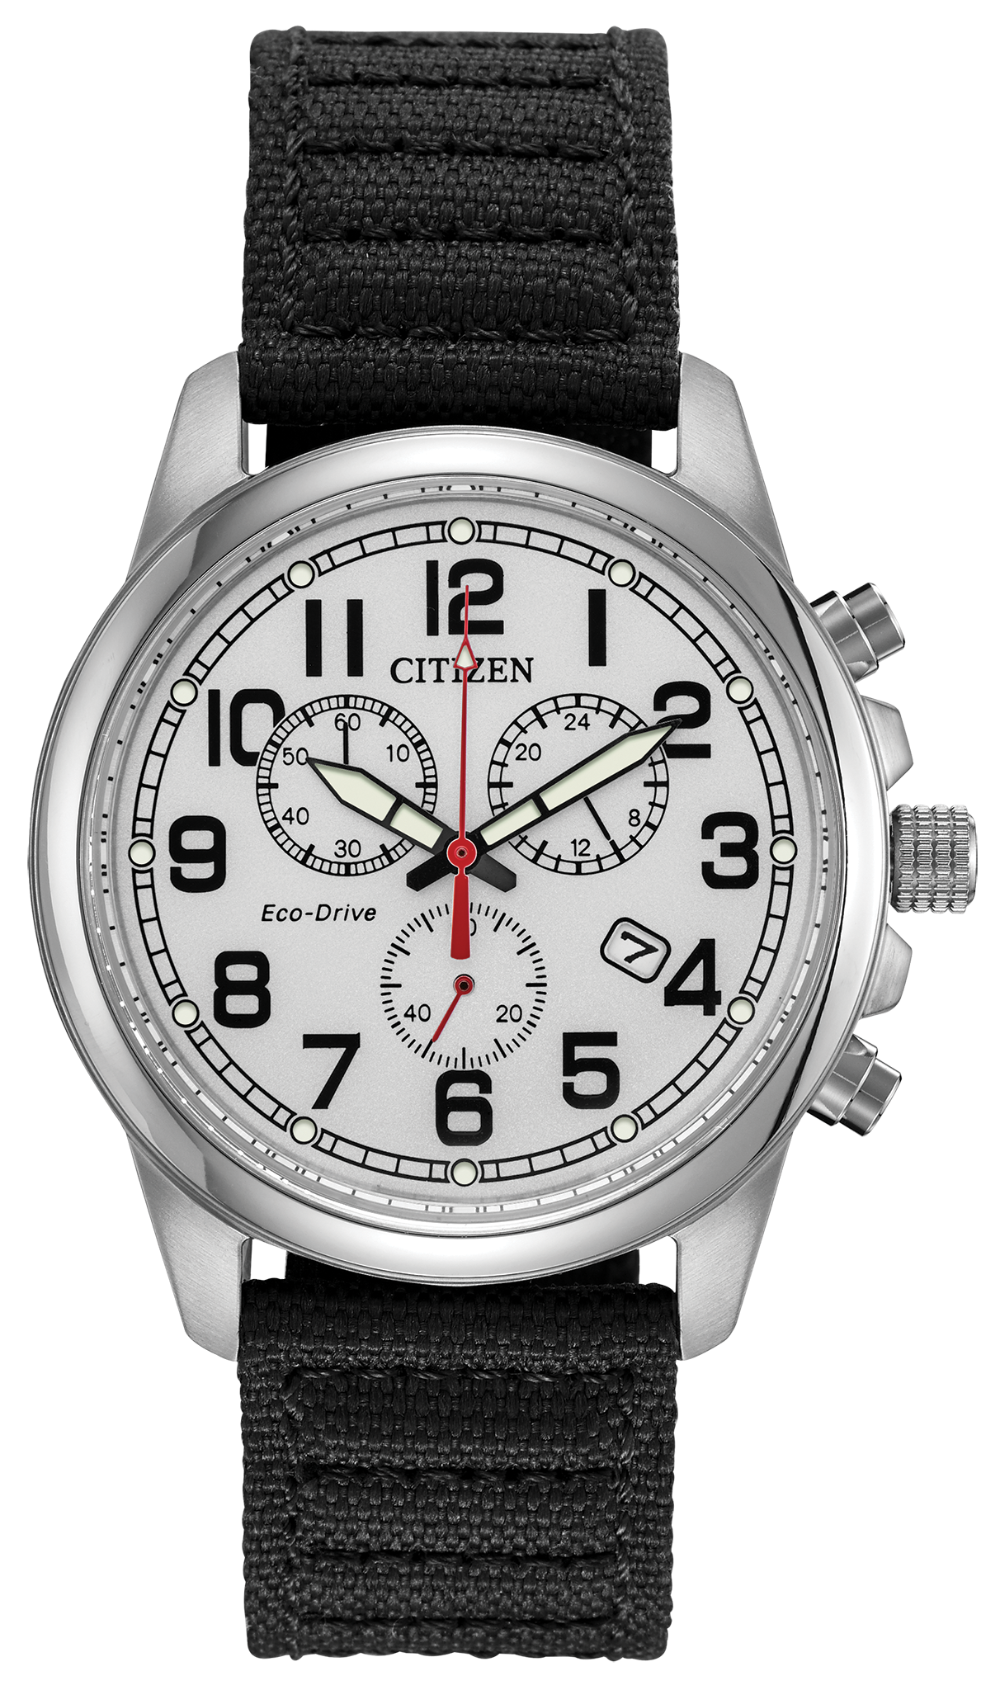 Citizen Military Chronograph Eco-Drive 39mm Watch